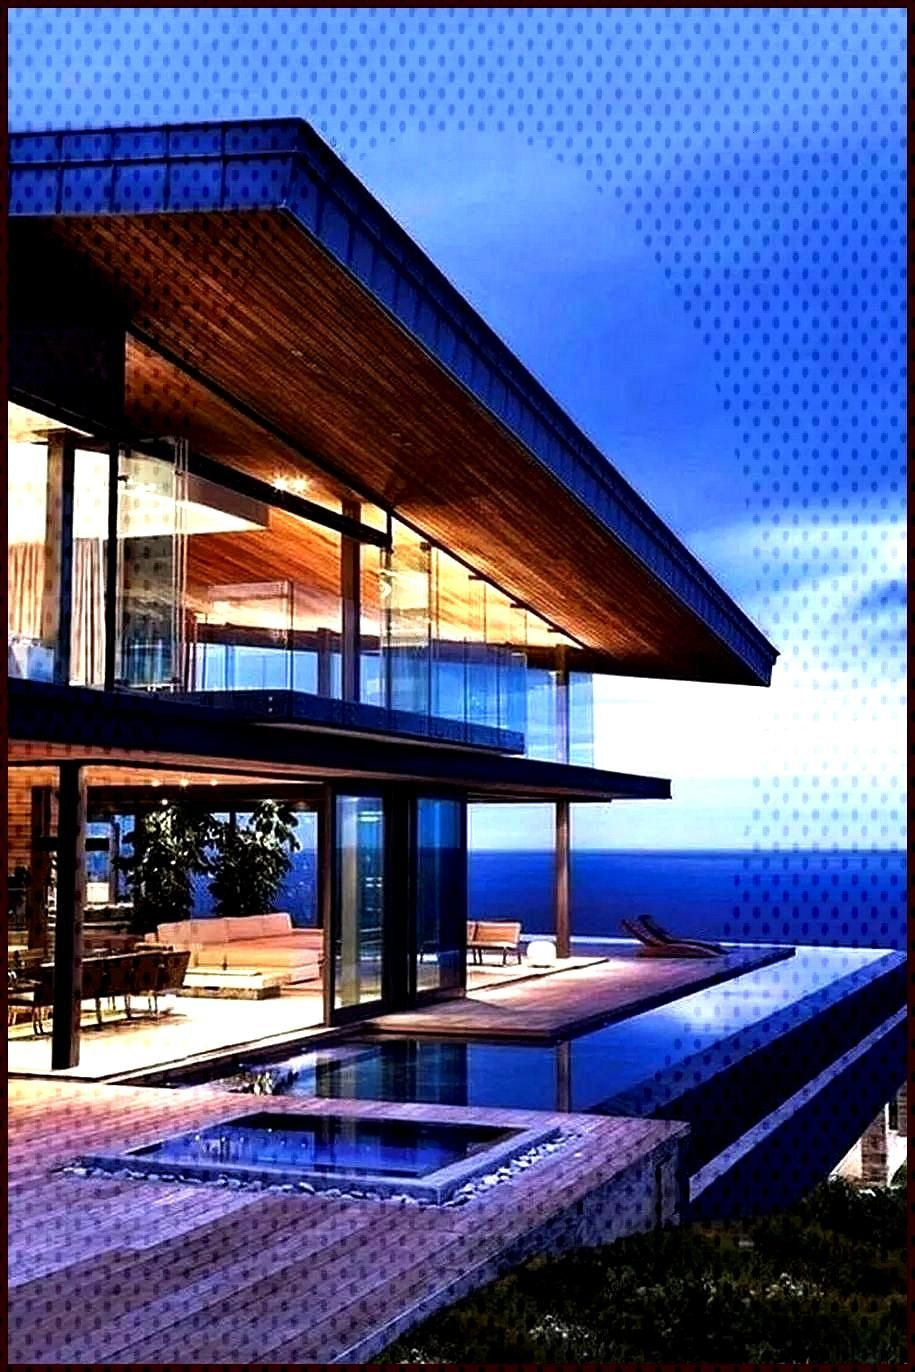 54 Beautiful Modern Home Design Models Here Are 10 Tips And Features You Need To Know 29 54 Beautif